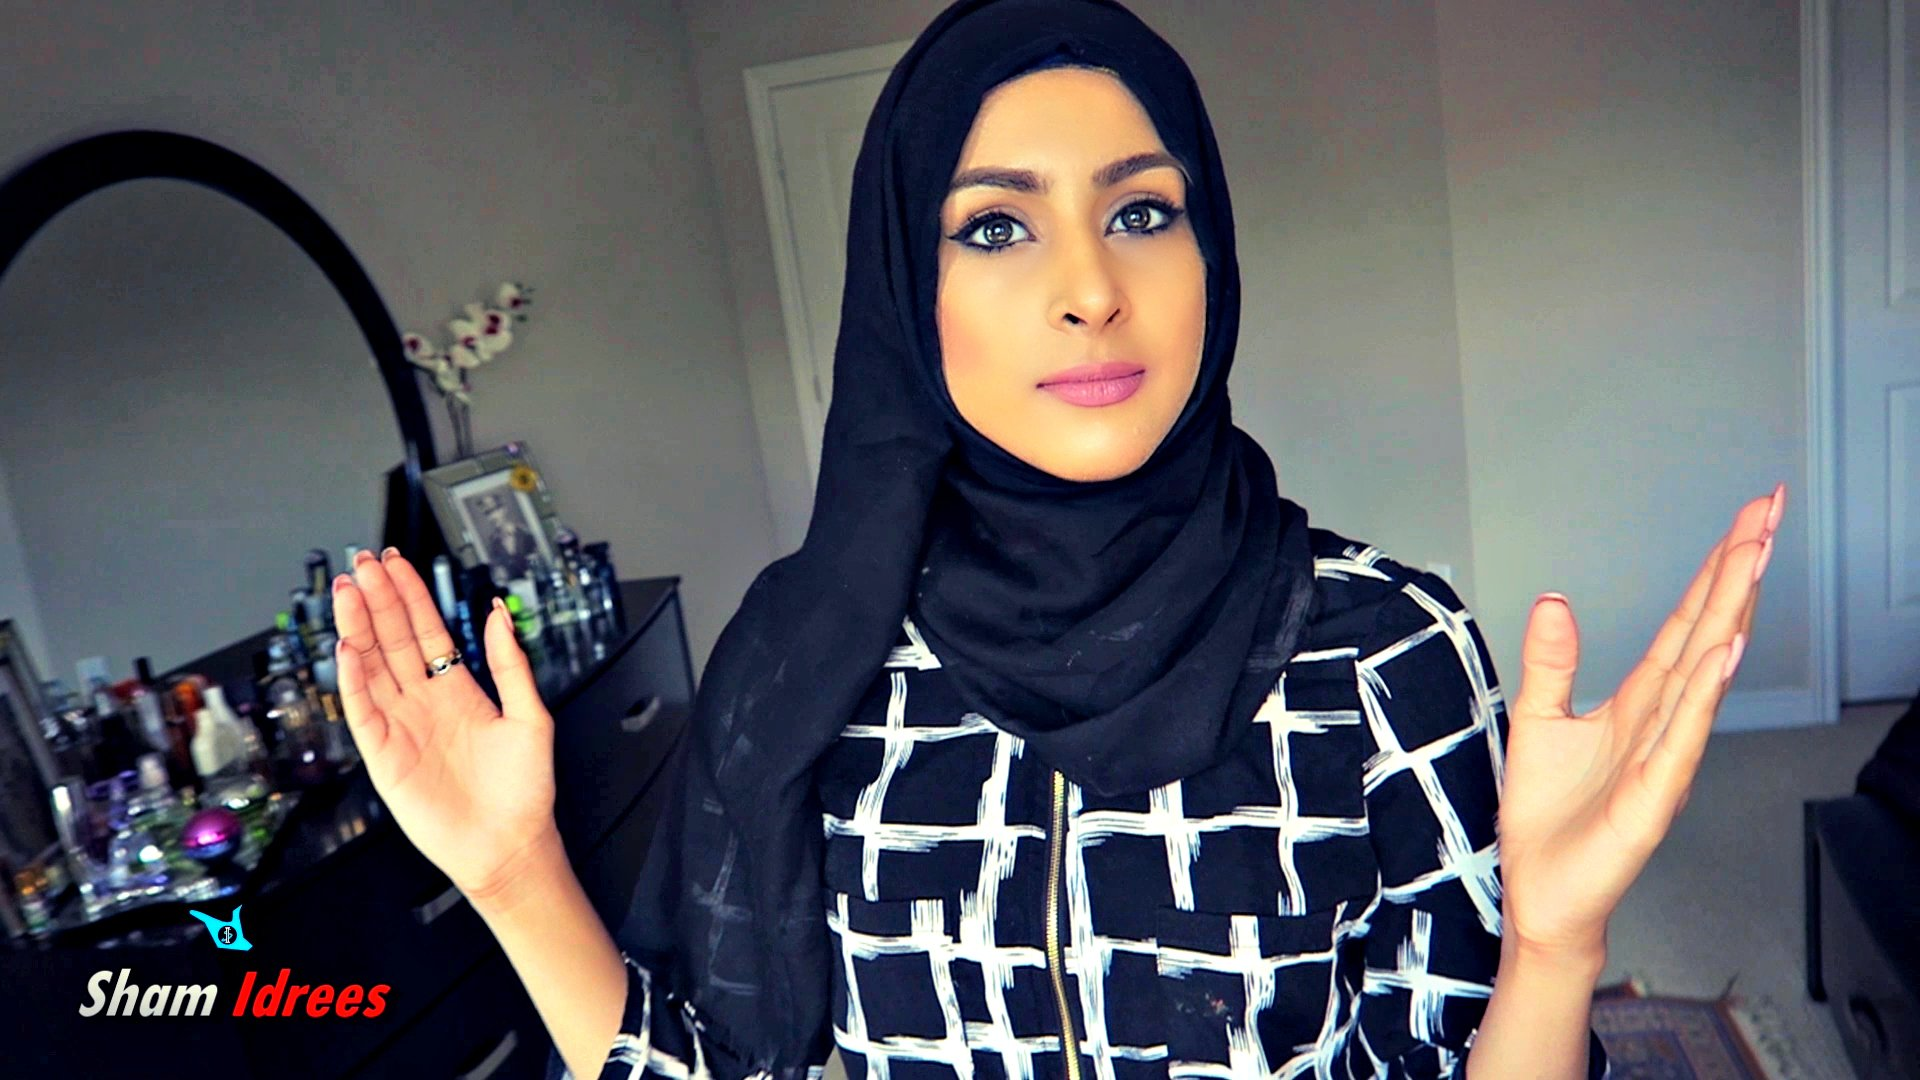 Sham Idrees On Twitter She Got A Marriage Proposal Https T Co Aqrcycrxxo Thumbs Up And Subscribe